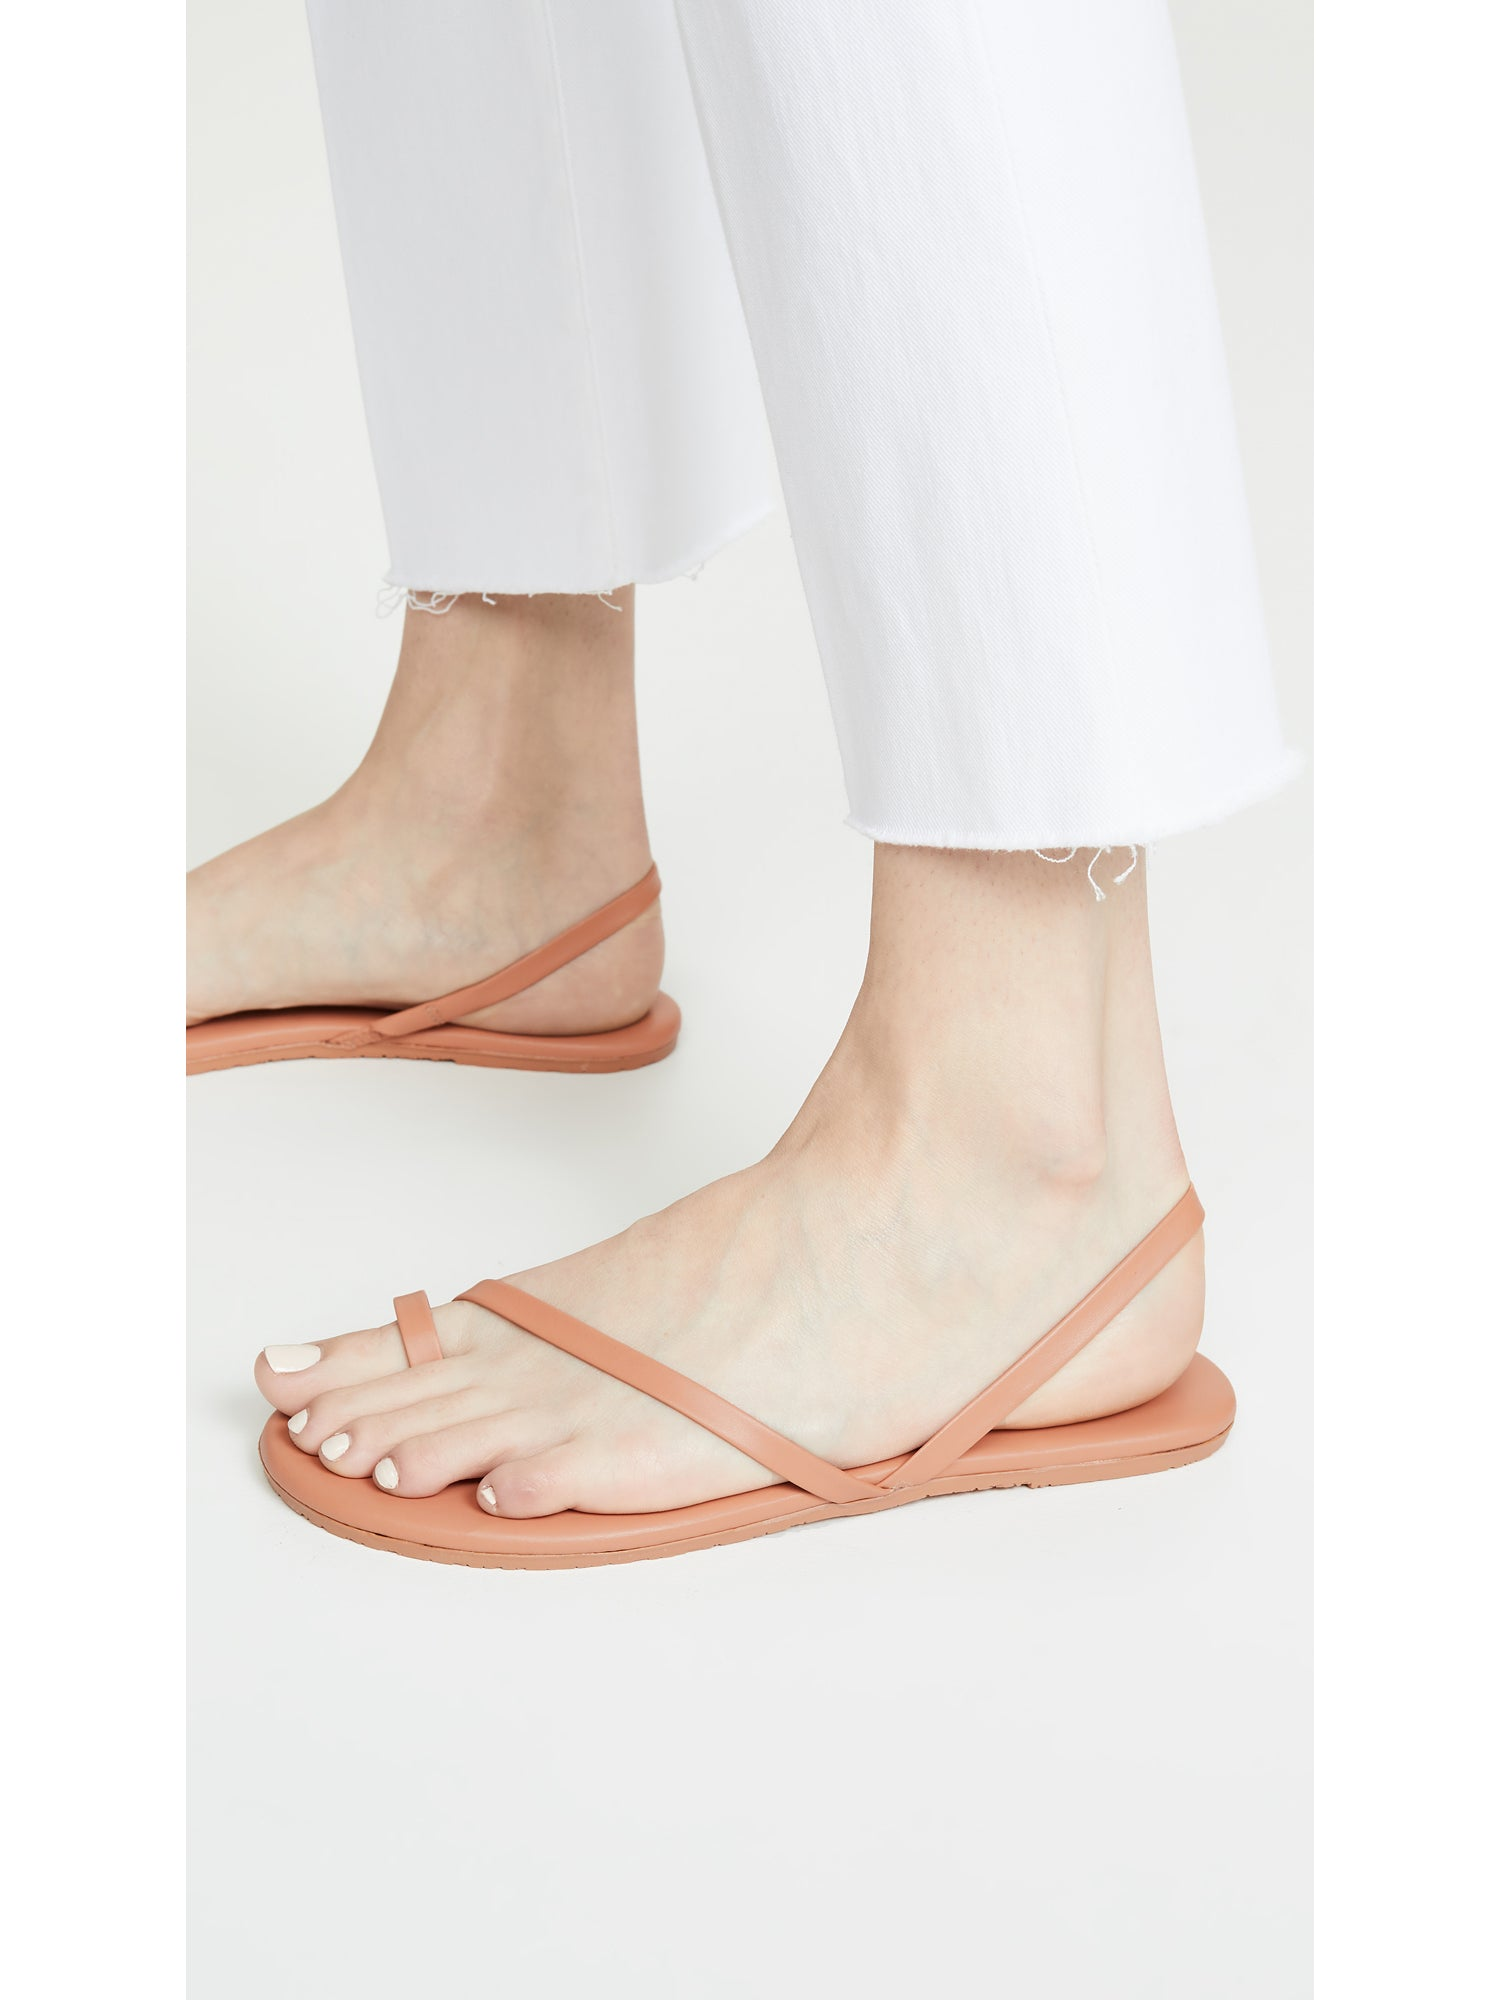 TKEES LC Tan Leather Toe Ring Sandals - Sienna Dope | TILDEN